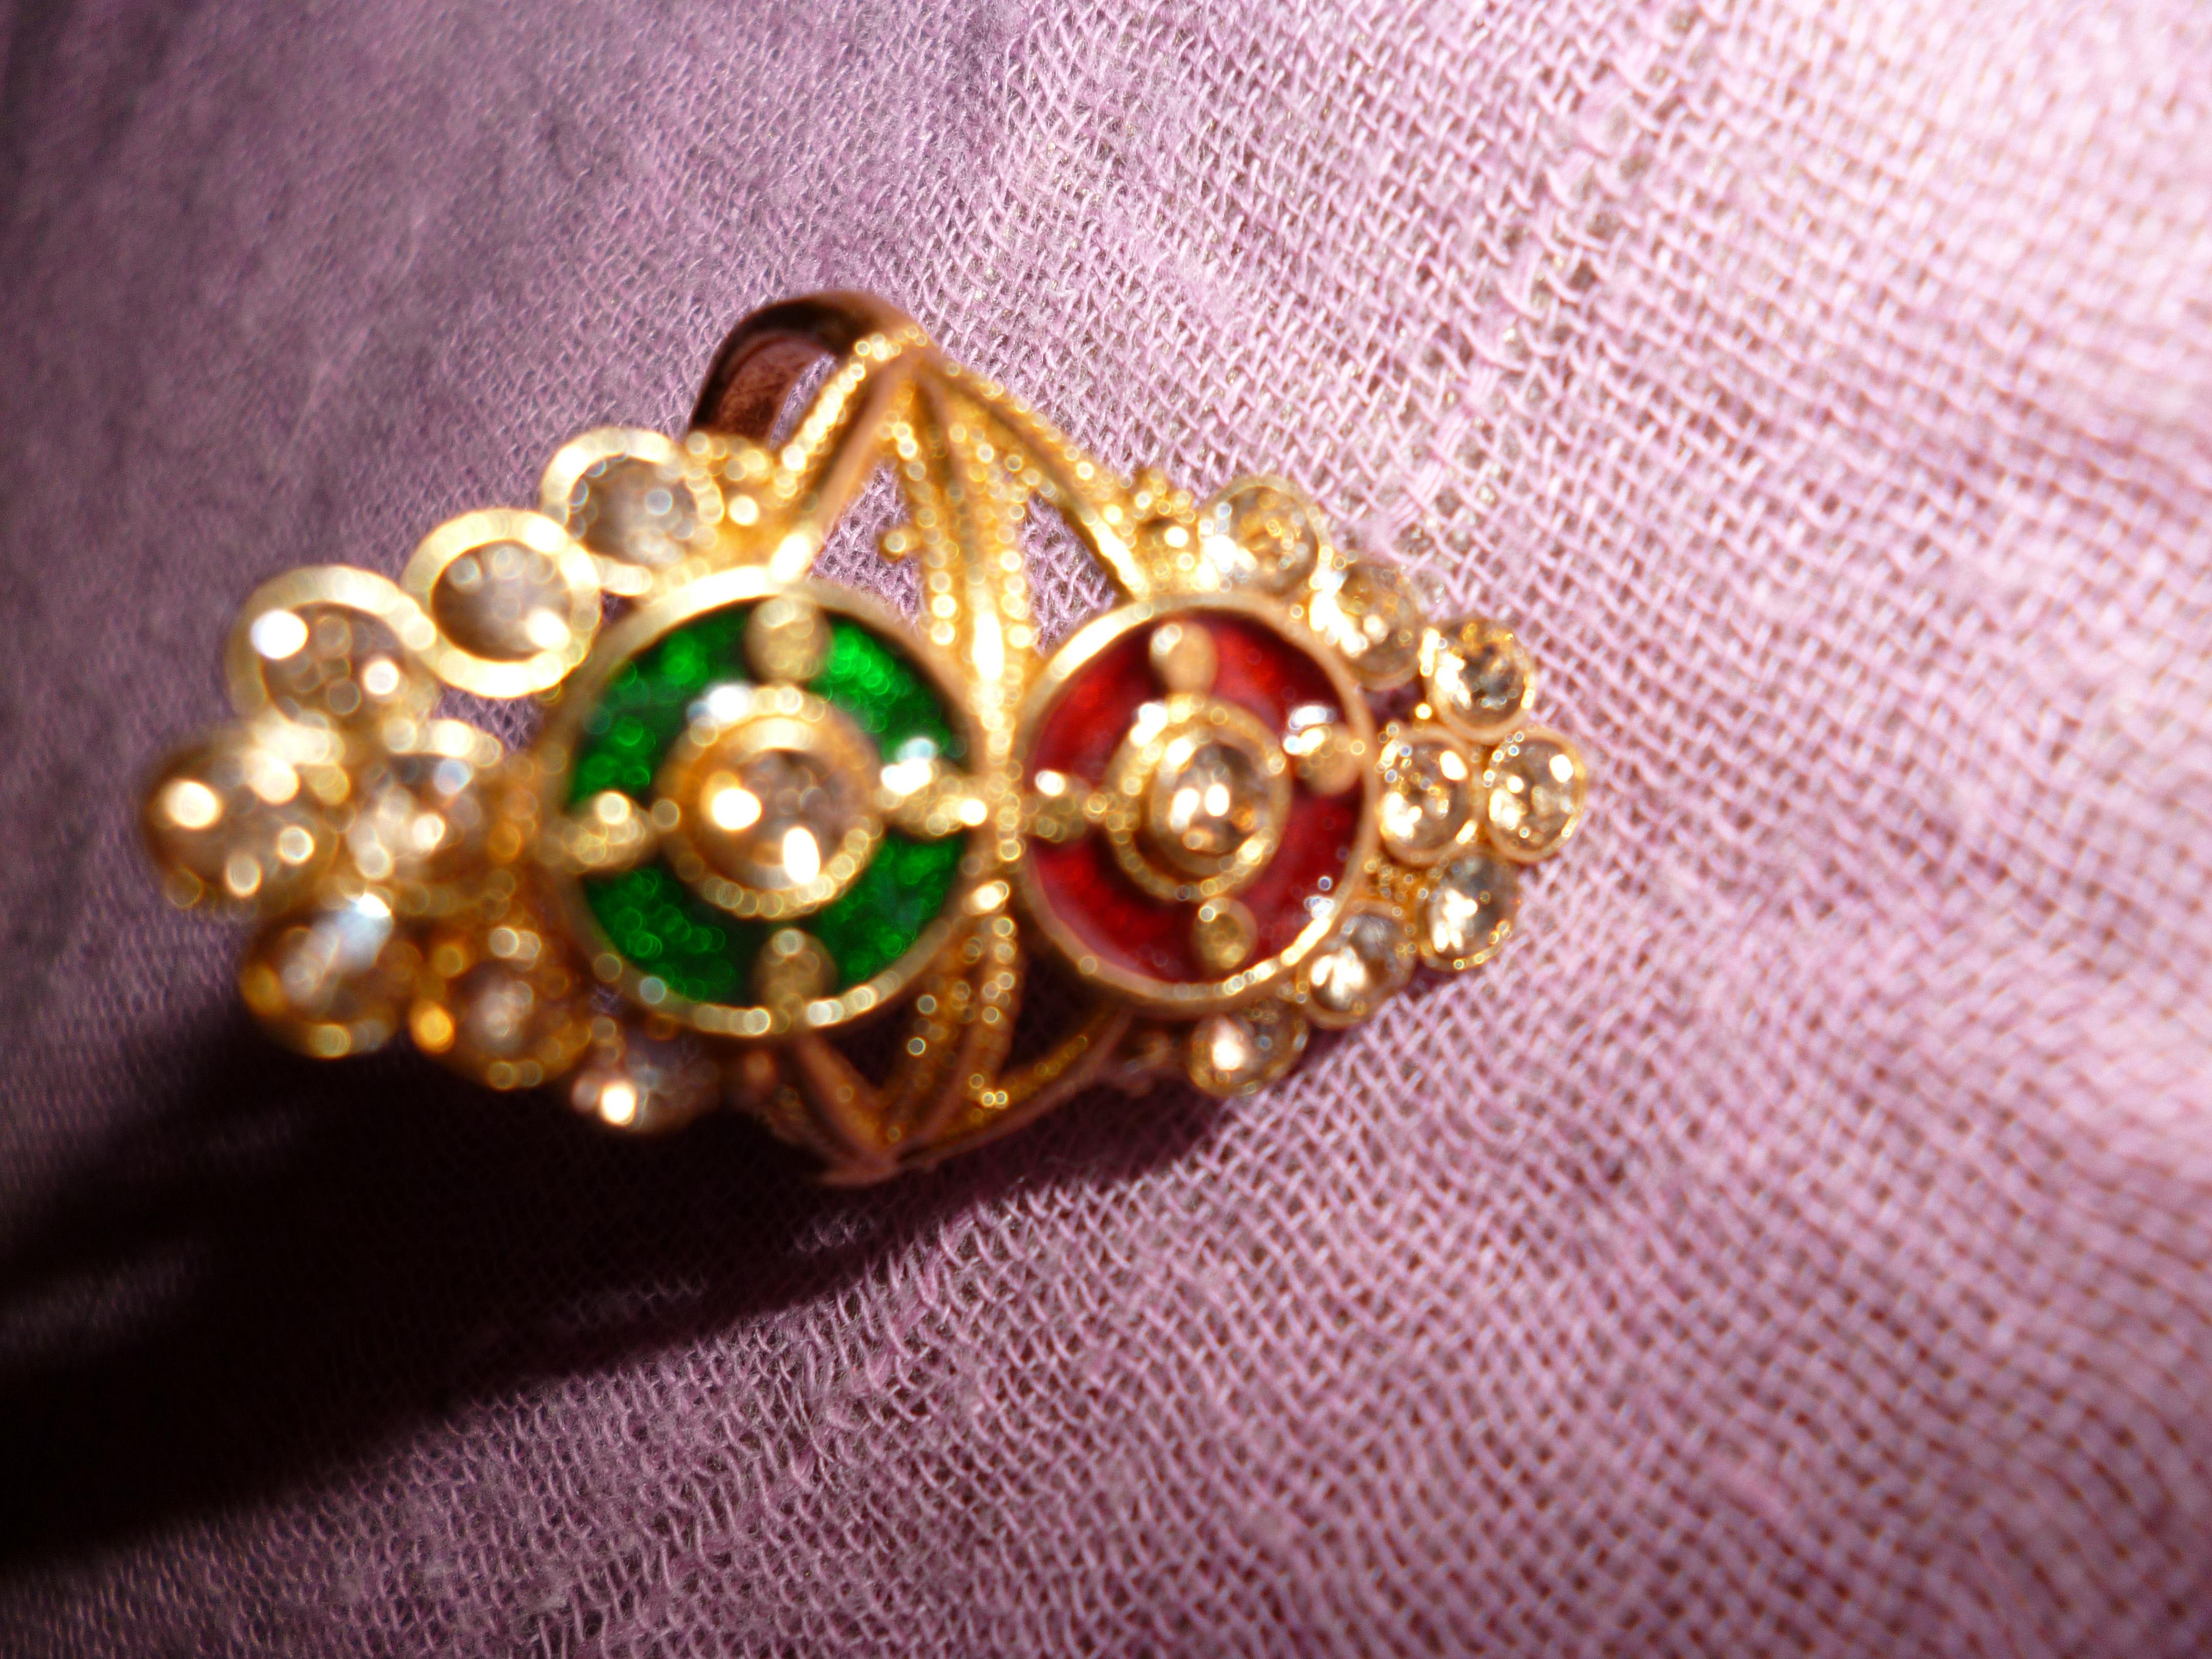 A Gold Plated Very Cute Ring For Her In Red And Greeen Stone A Gold Plated Very Cute Ring For Her In Red And Greeen Stone